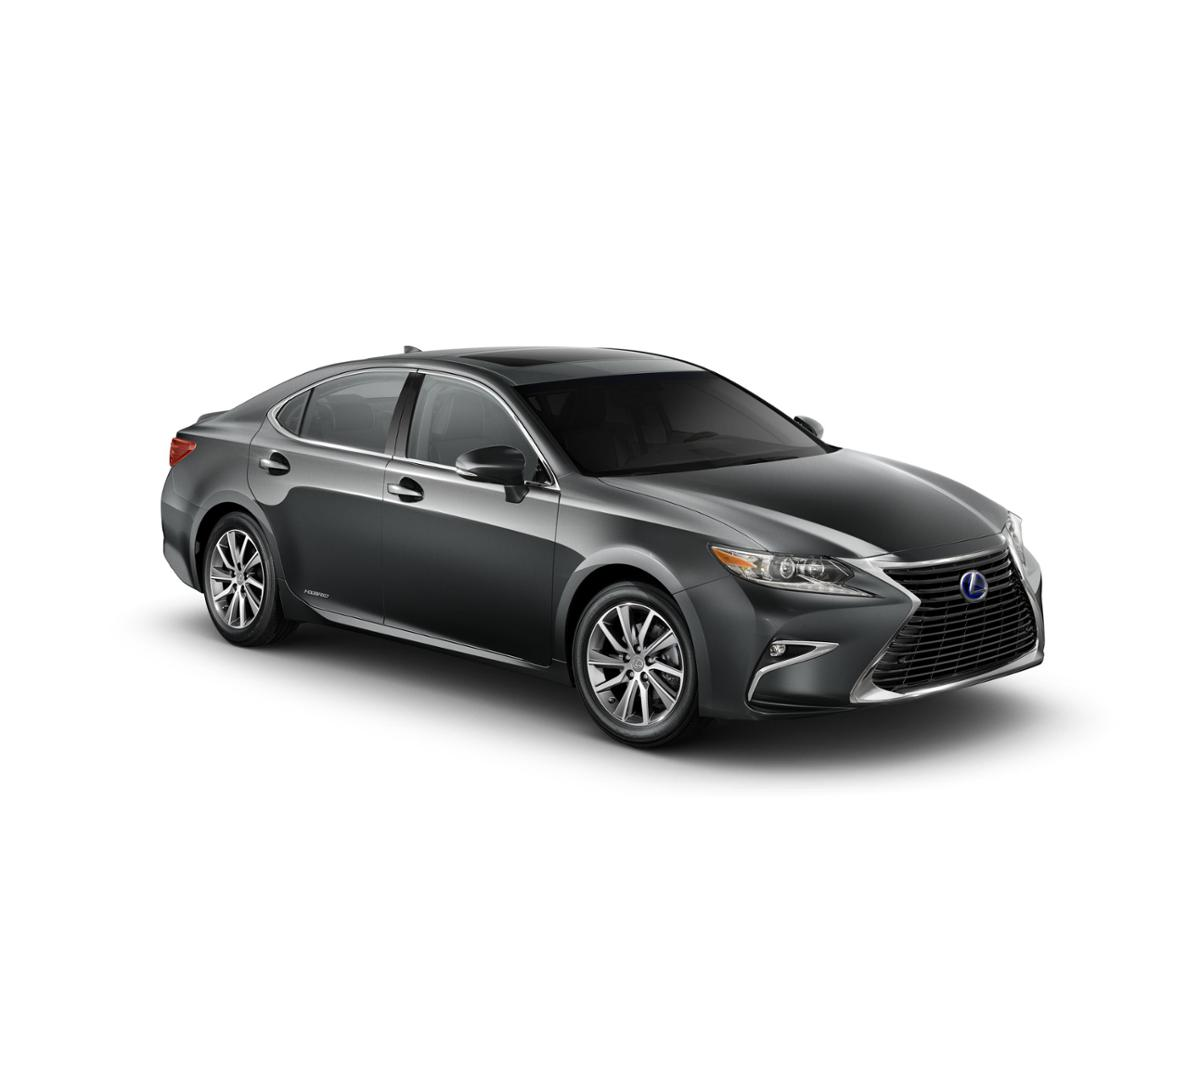 New Car 2018 Nebula Gray Pearl Lexus Es 300h 300h For Sale